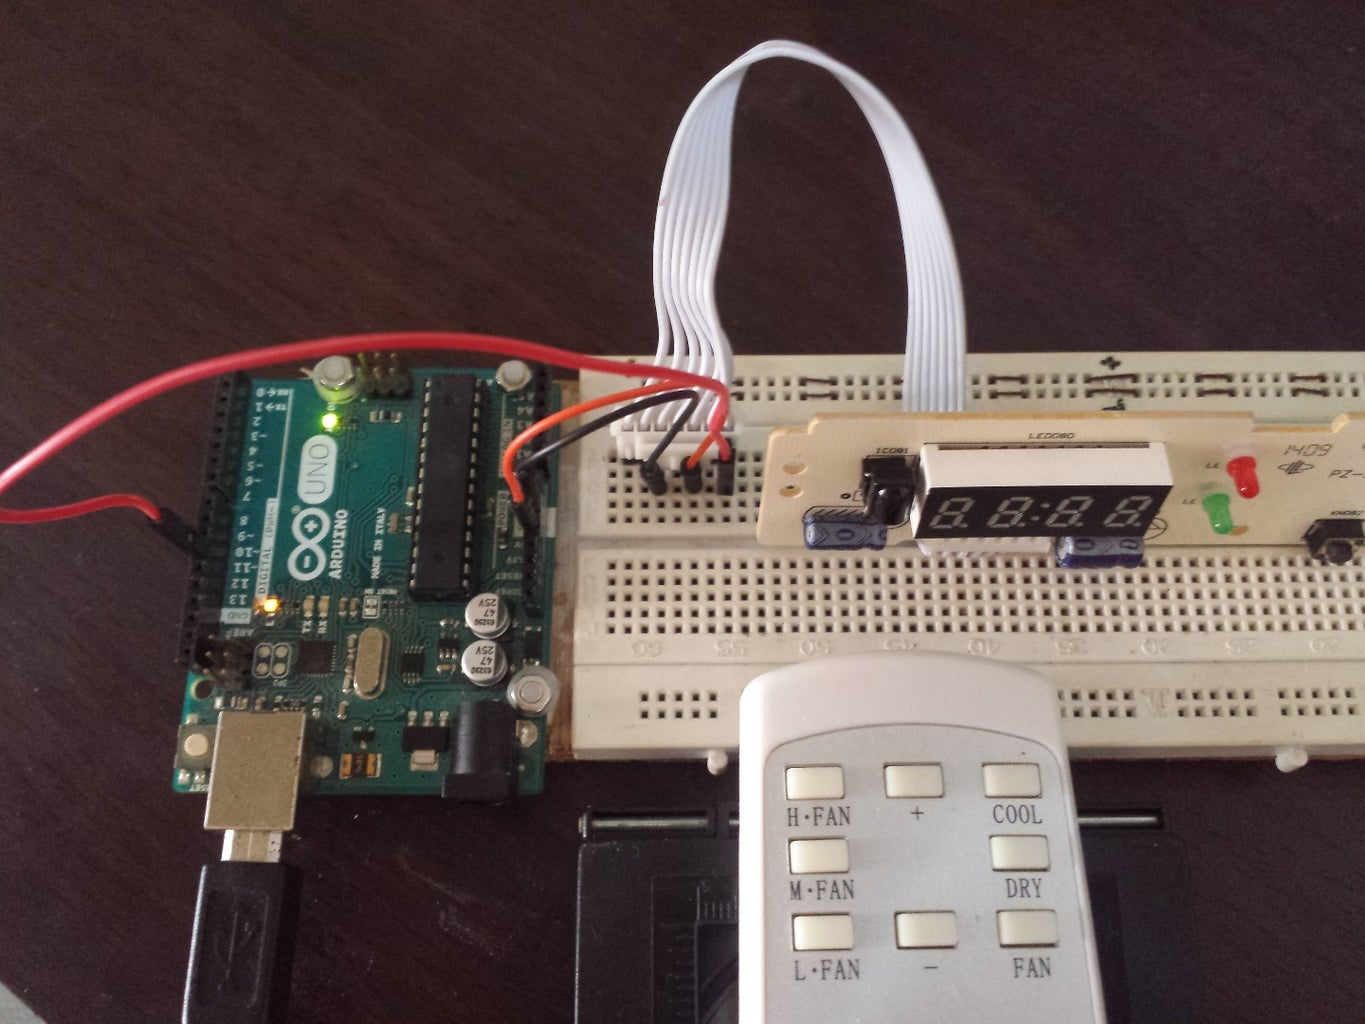 Record the IR Commands Used to Control the Aircon